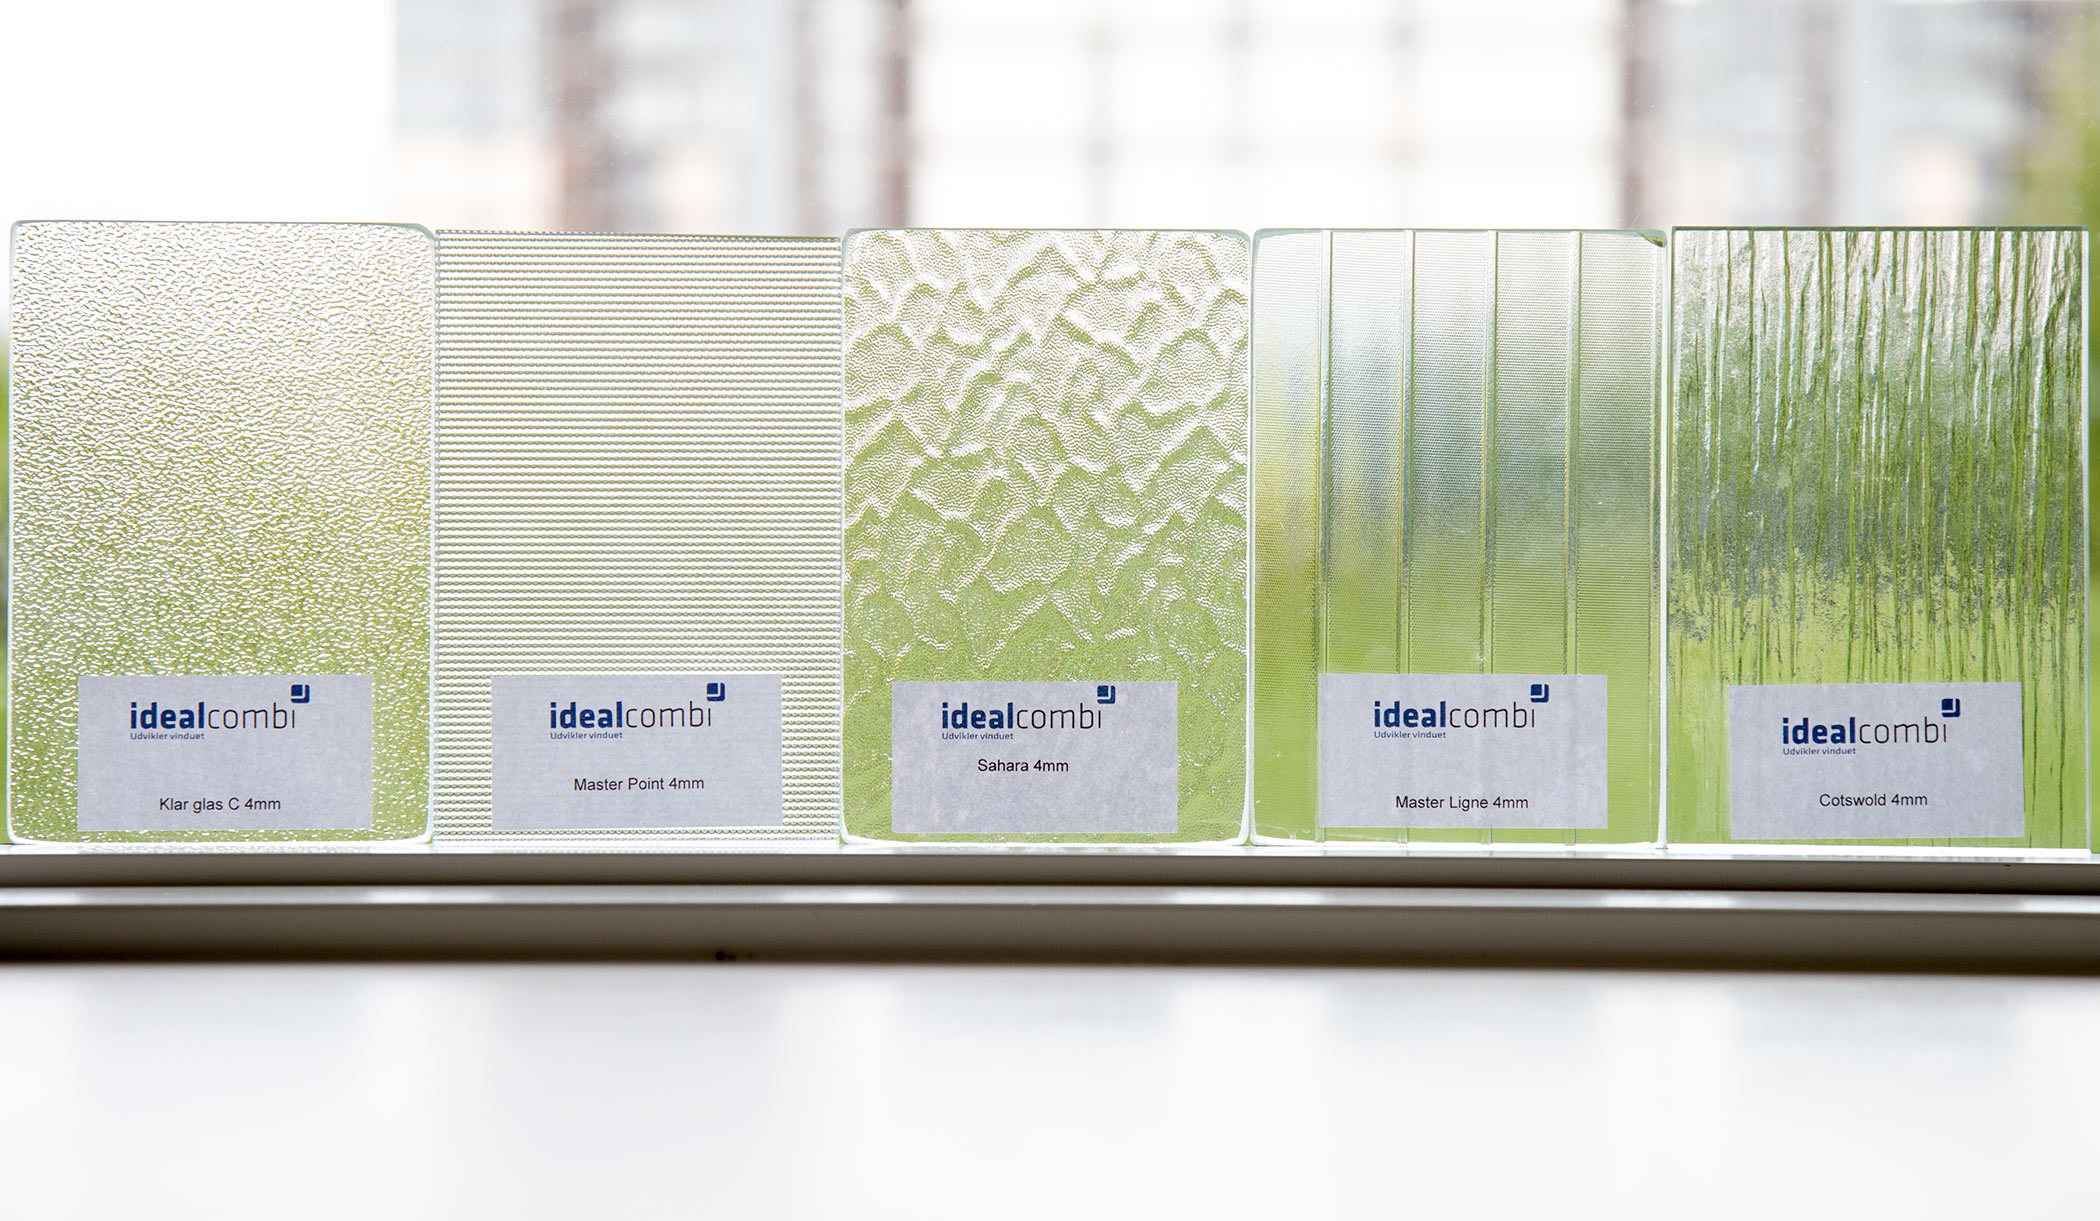 Colours Amp Glazing Options For Idealcombi Windows And Doors